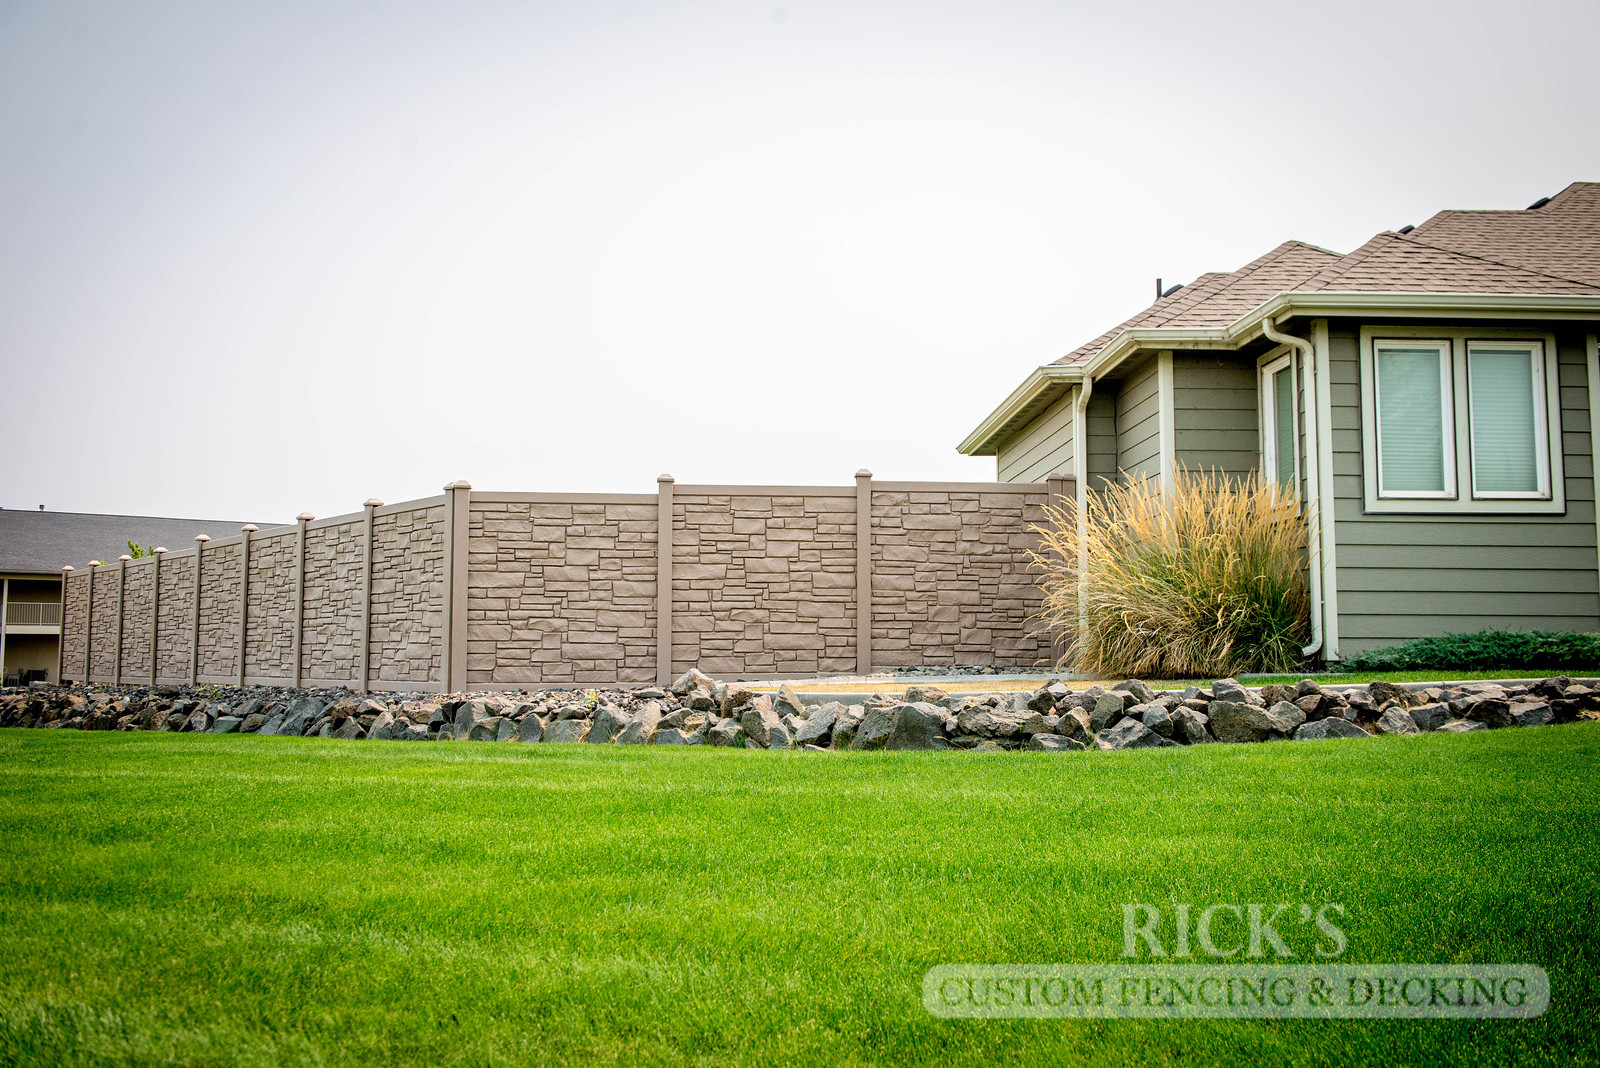 4013 - Allegheny Simulated Rock Fencing